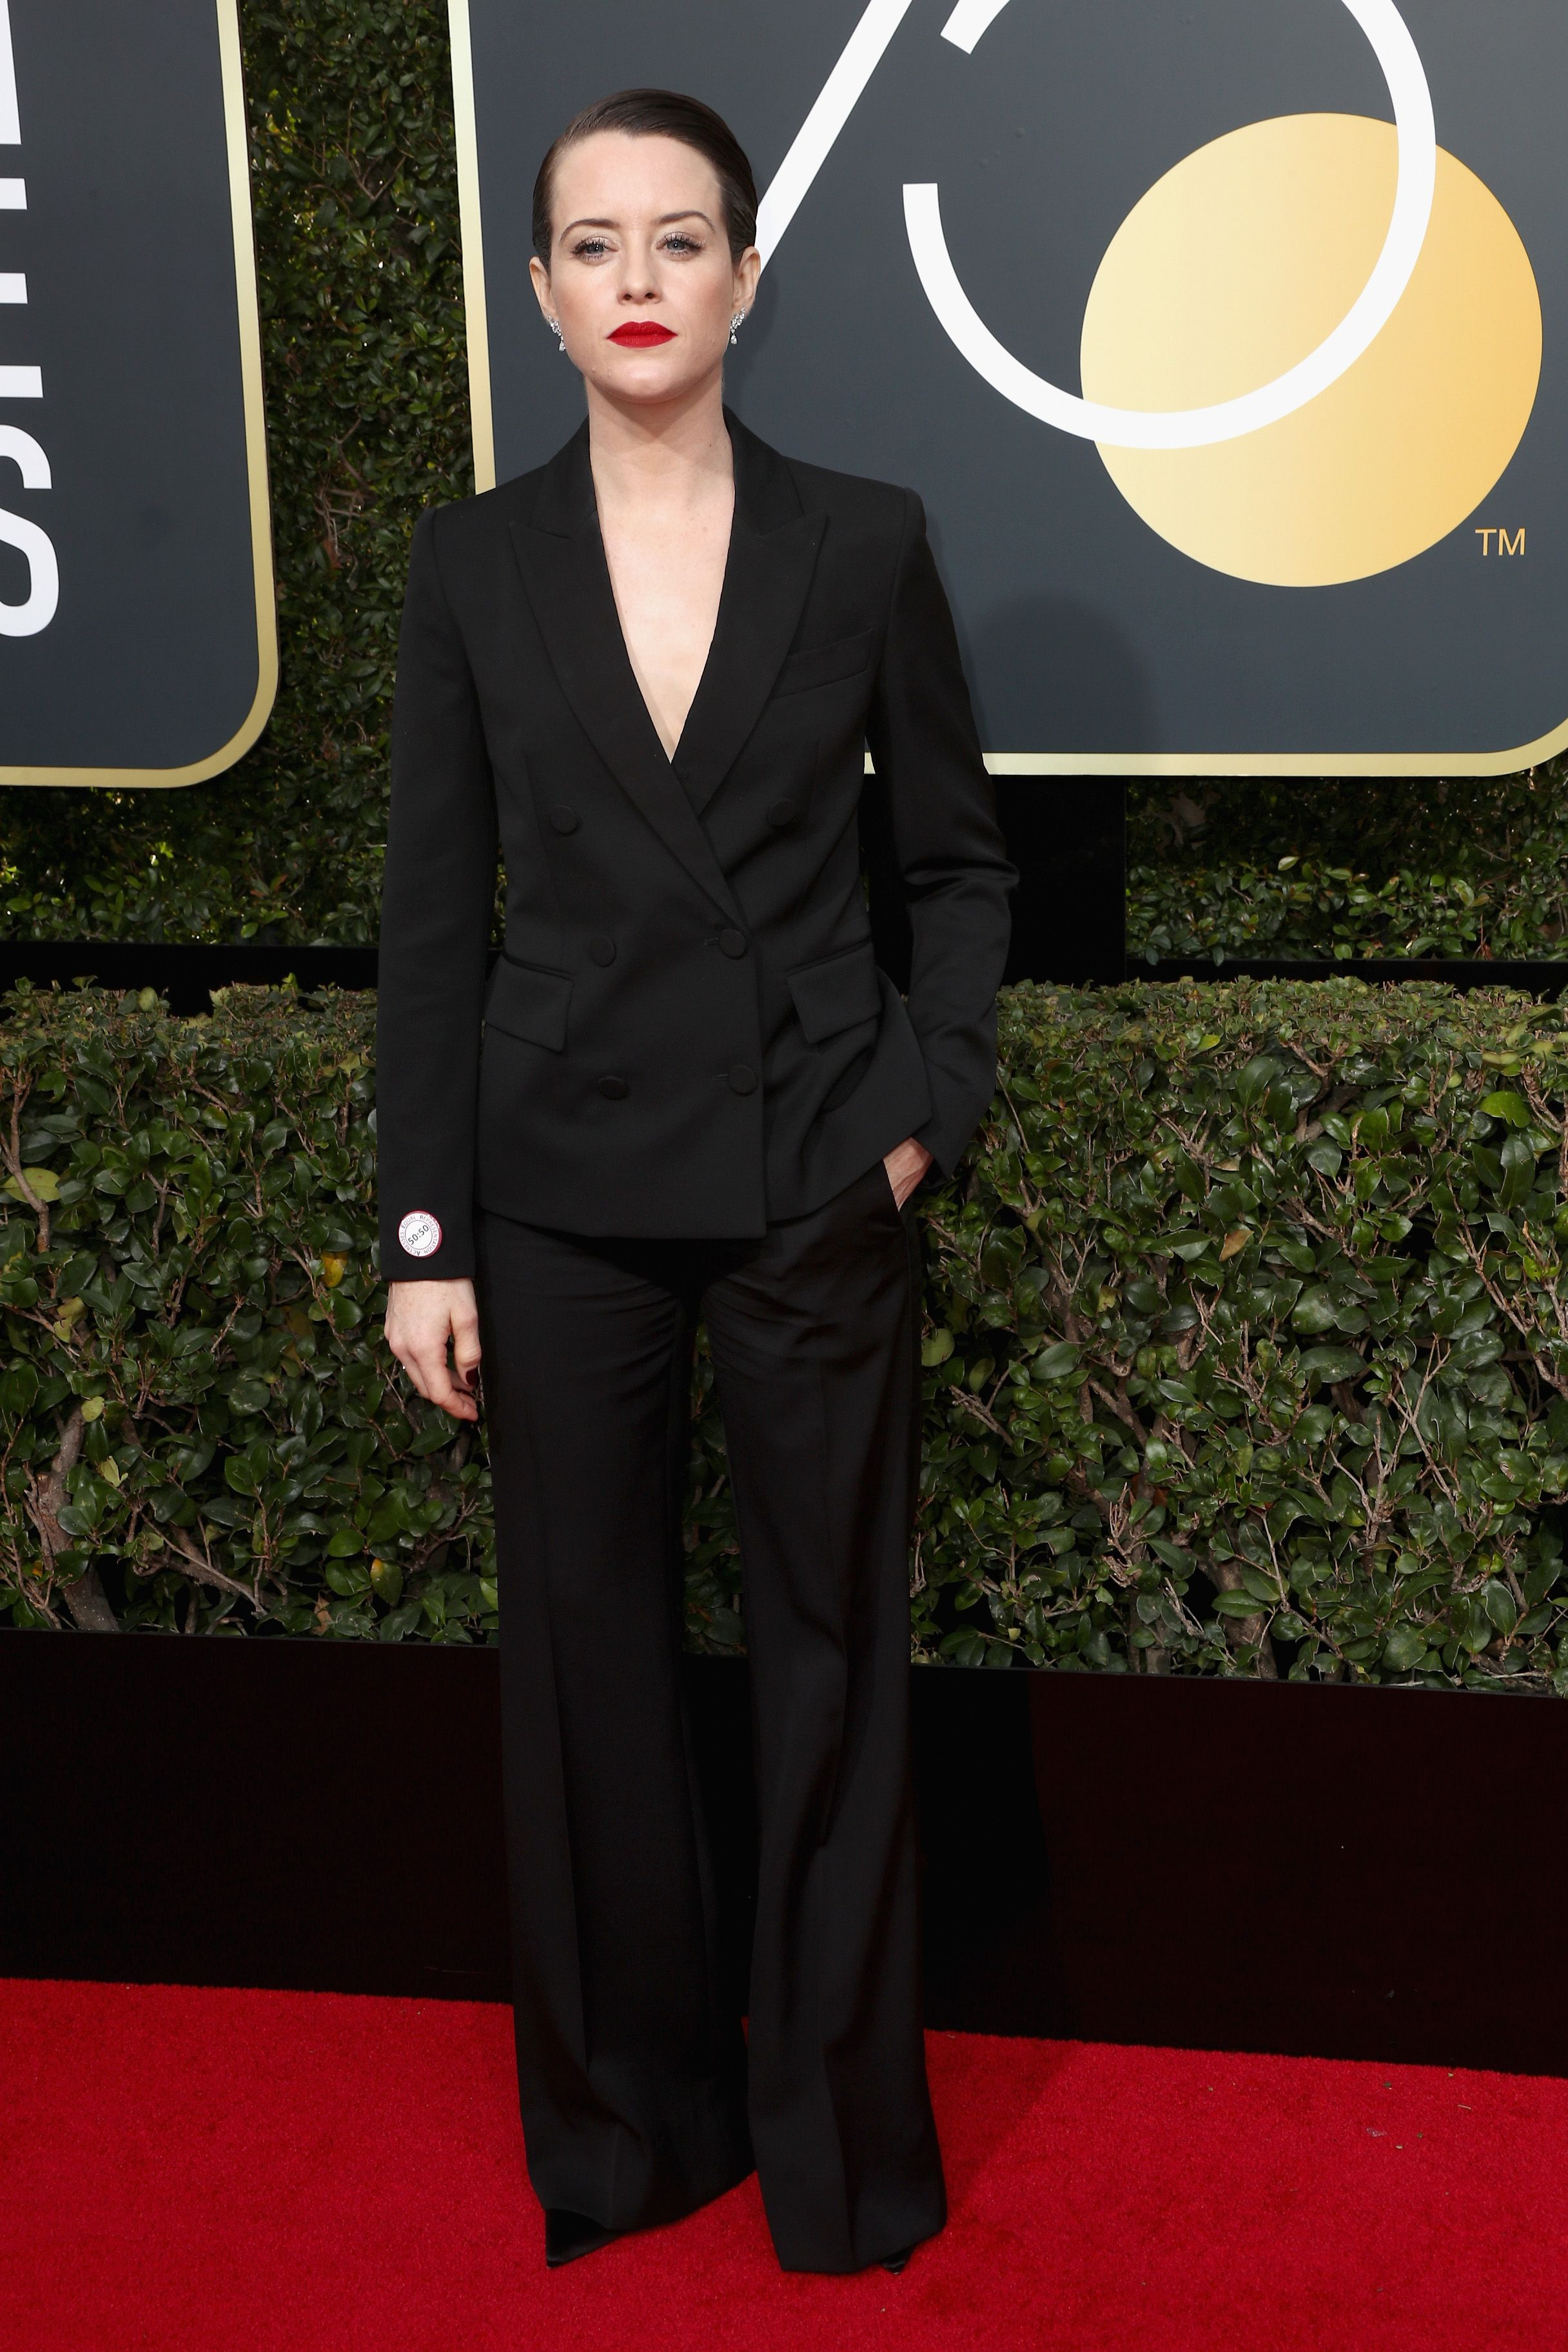 Claire Foy wore Stella McCartney to the golden globes